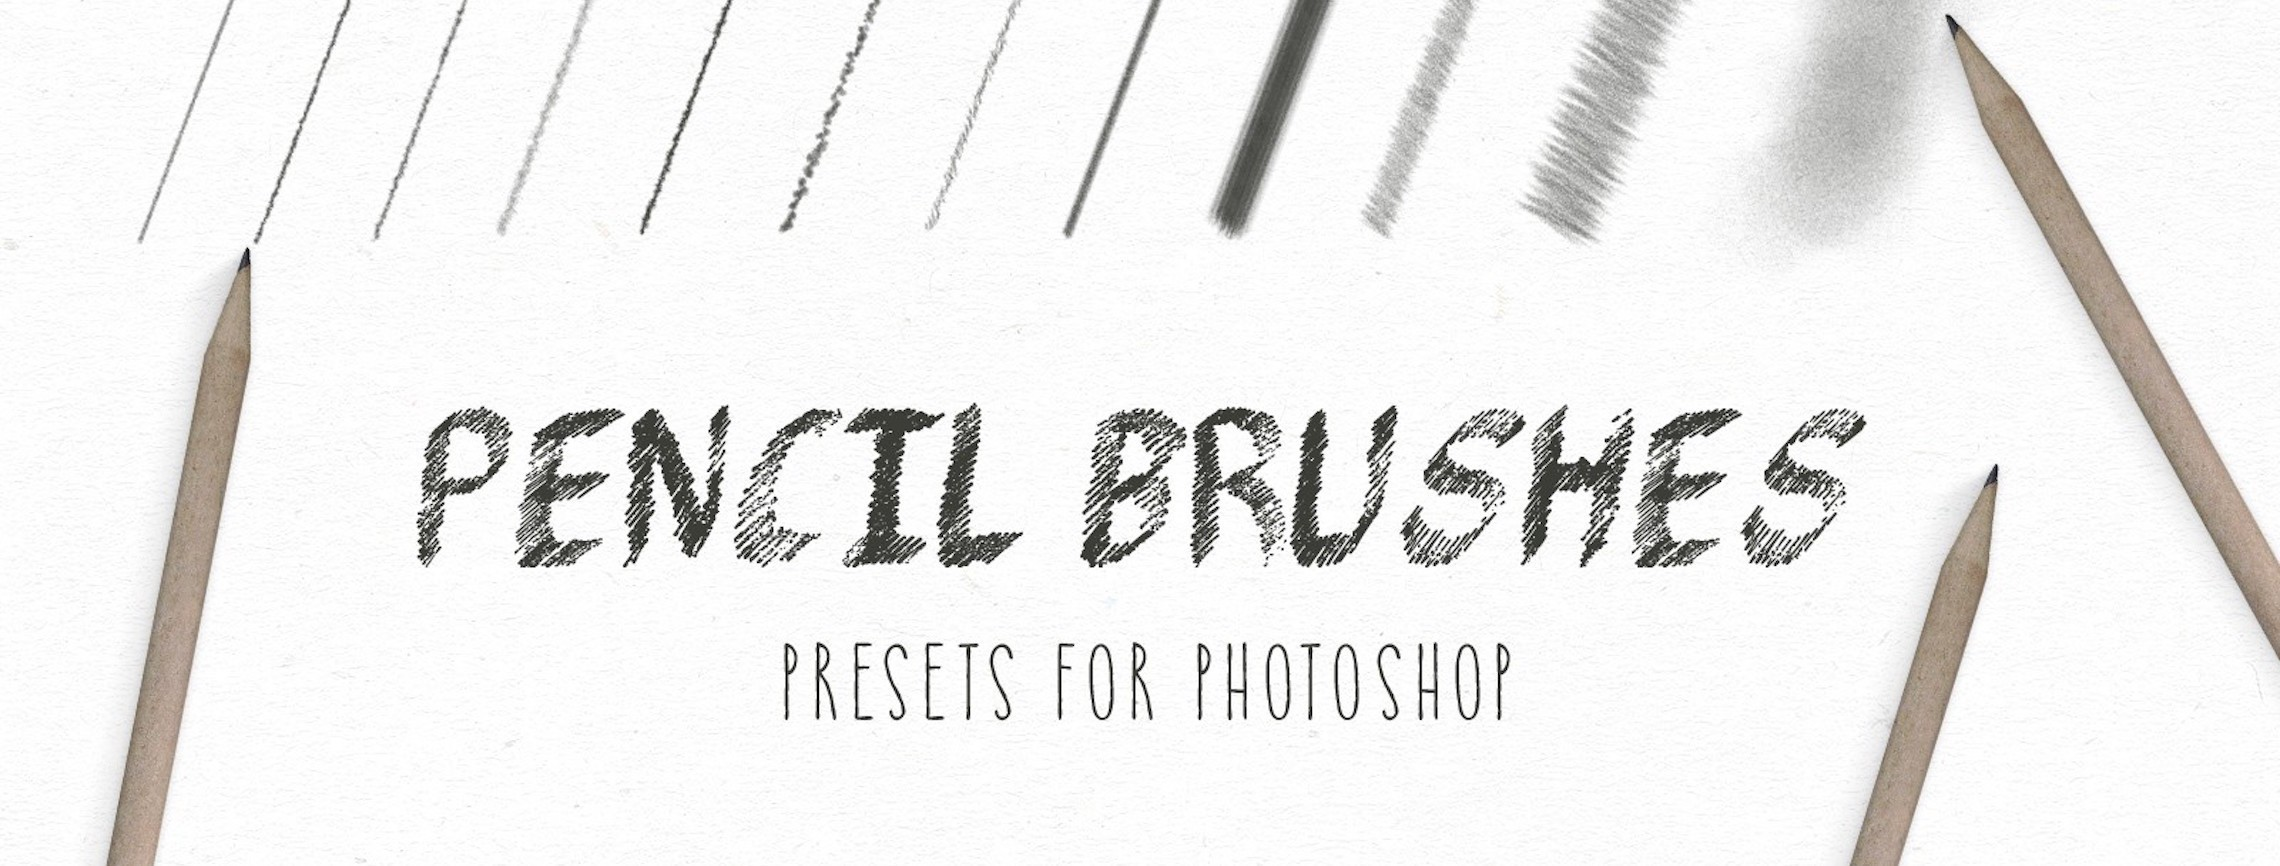 15 Super-Realistic Pencil Brushes for Photoshop CC+